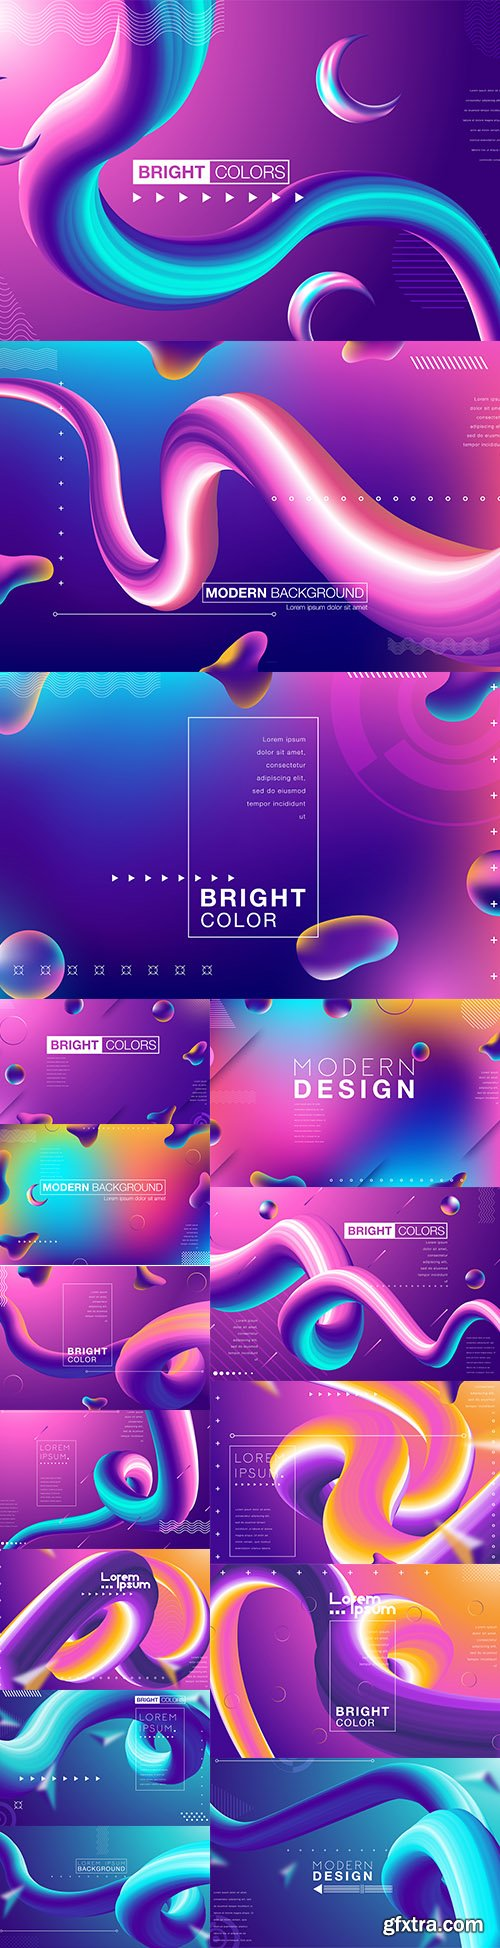 Abstract Gradient Design Illustrations